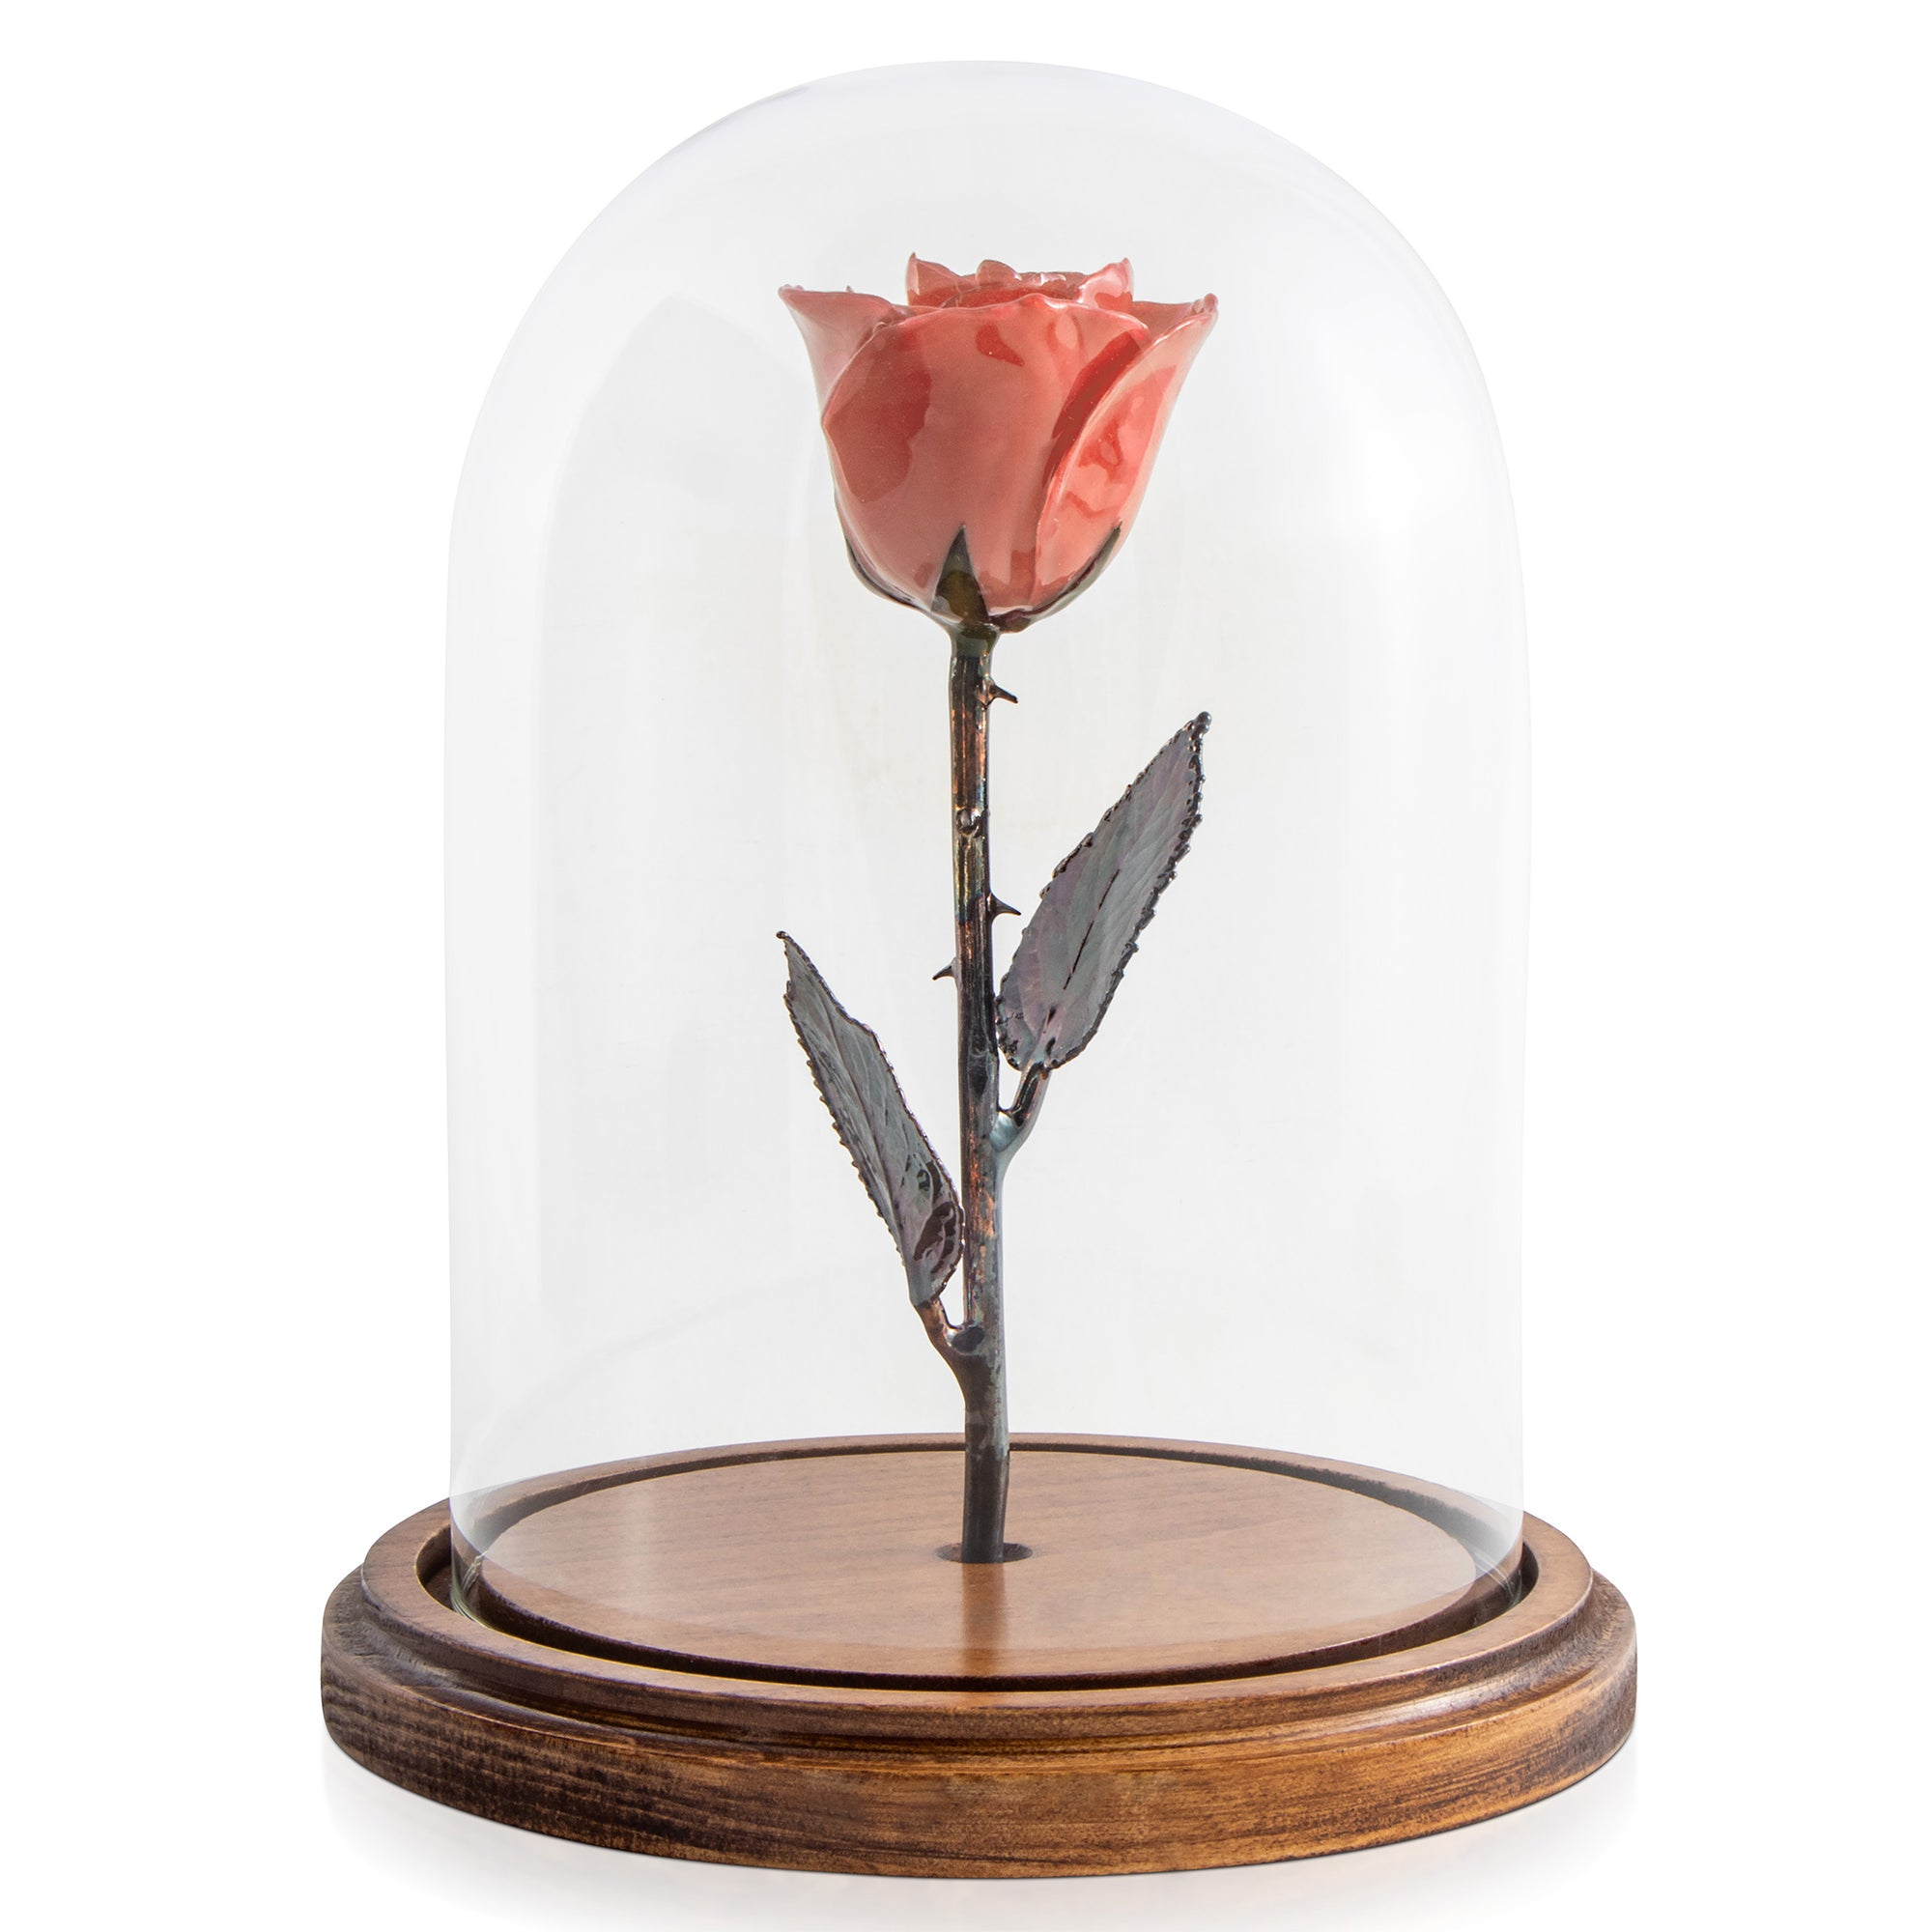 Pink Enchanted Rose (aka Beauty & The Beast Rose) with Patina Copper Stem Mounted to A Hand Turned Solid Wood Base under a glass dome.